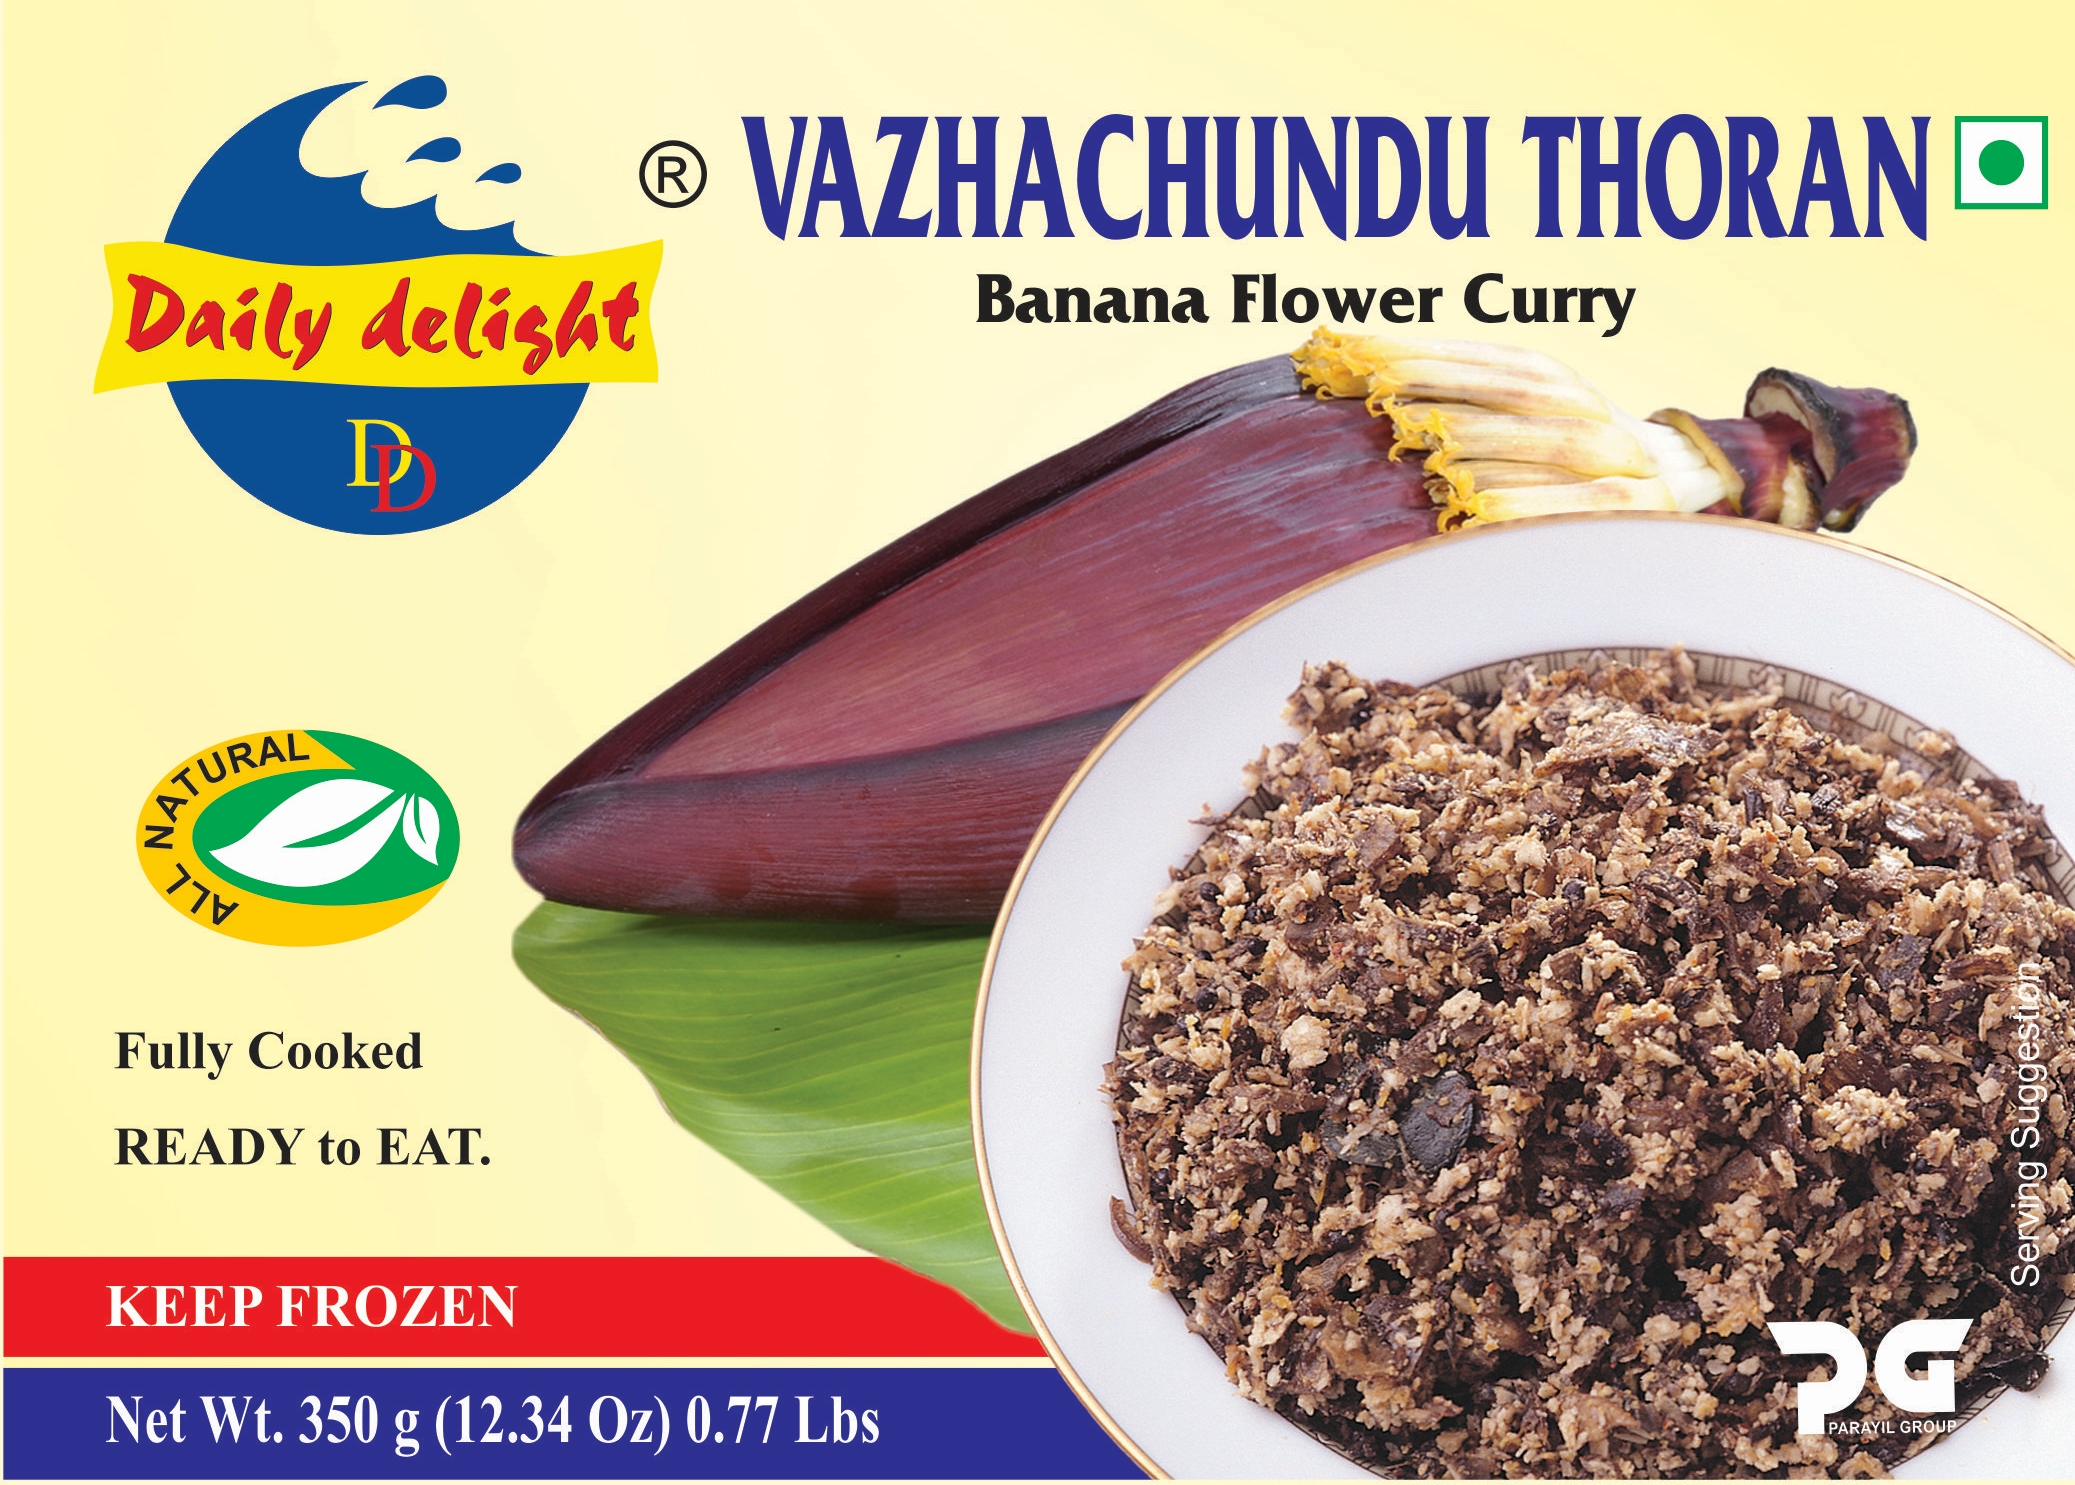 Daily Delight Vazhachundu Thoran